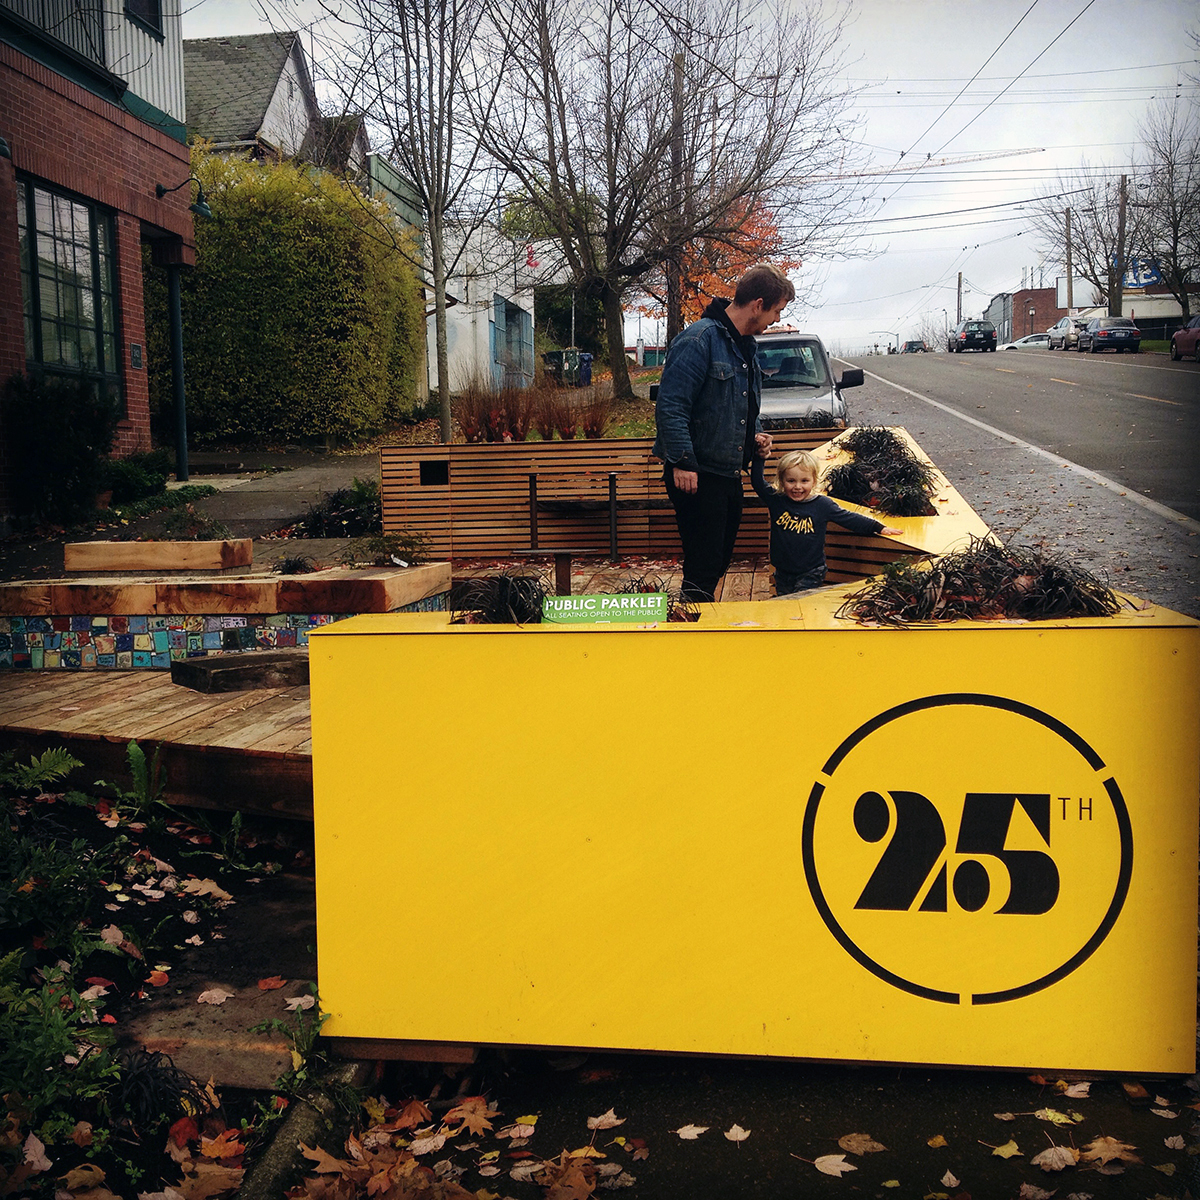 A view from the west side of the parklet.